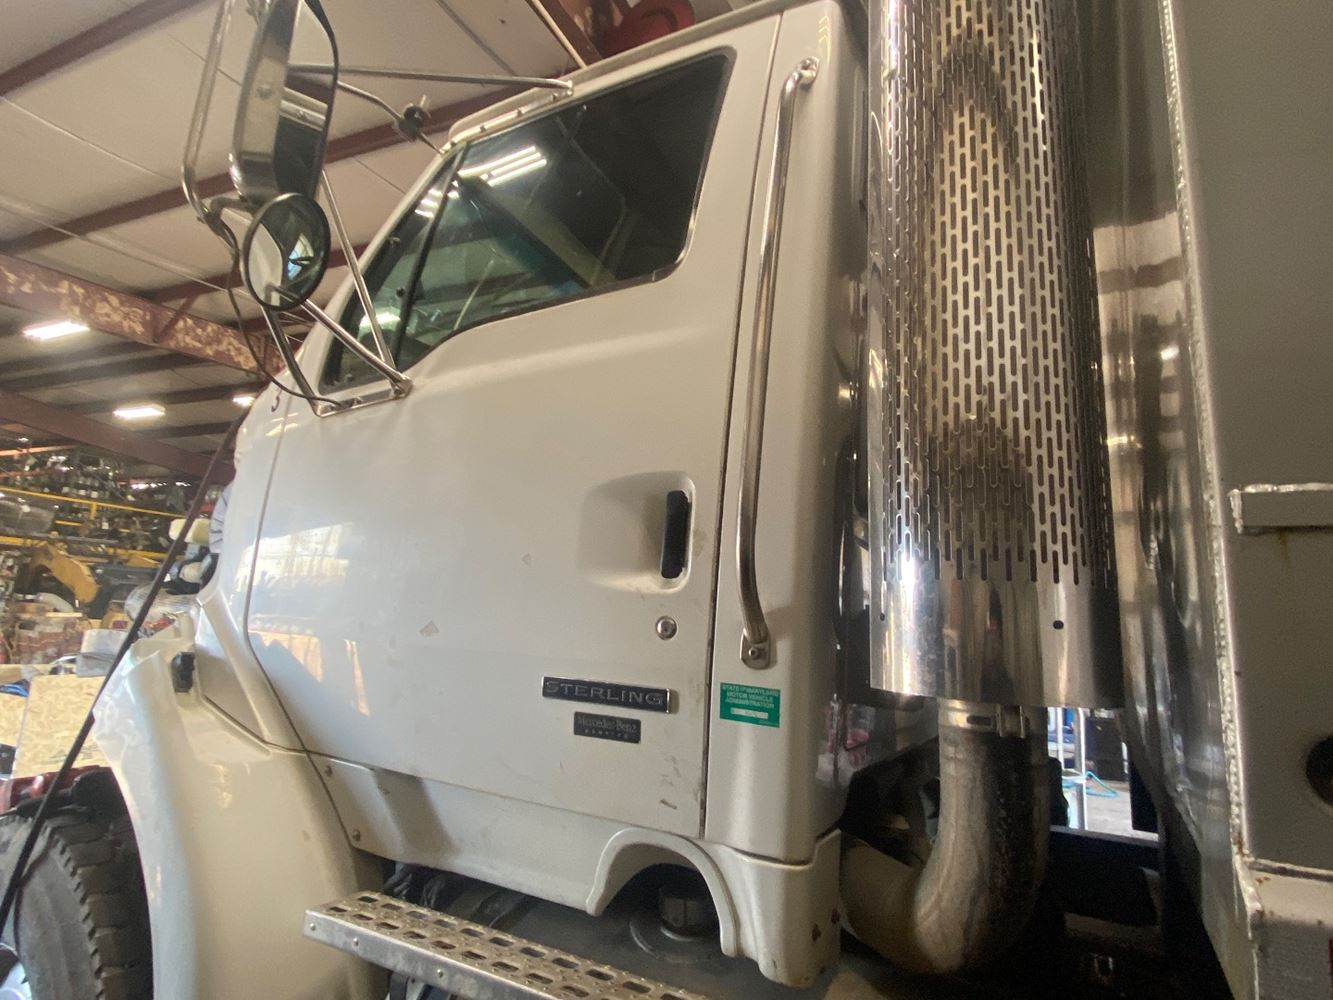 2004 STERLING A9500 CAB TRUCK PARTS #707528